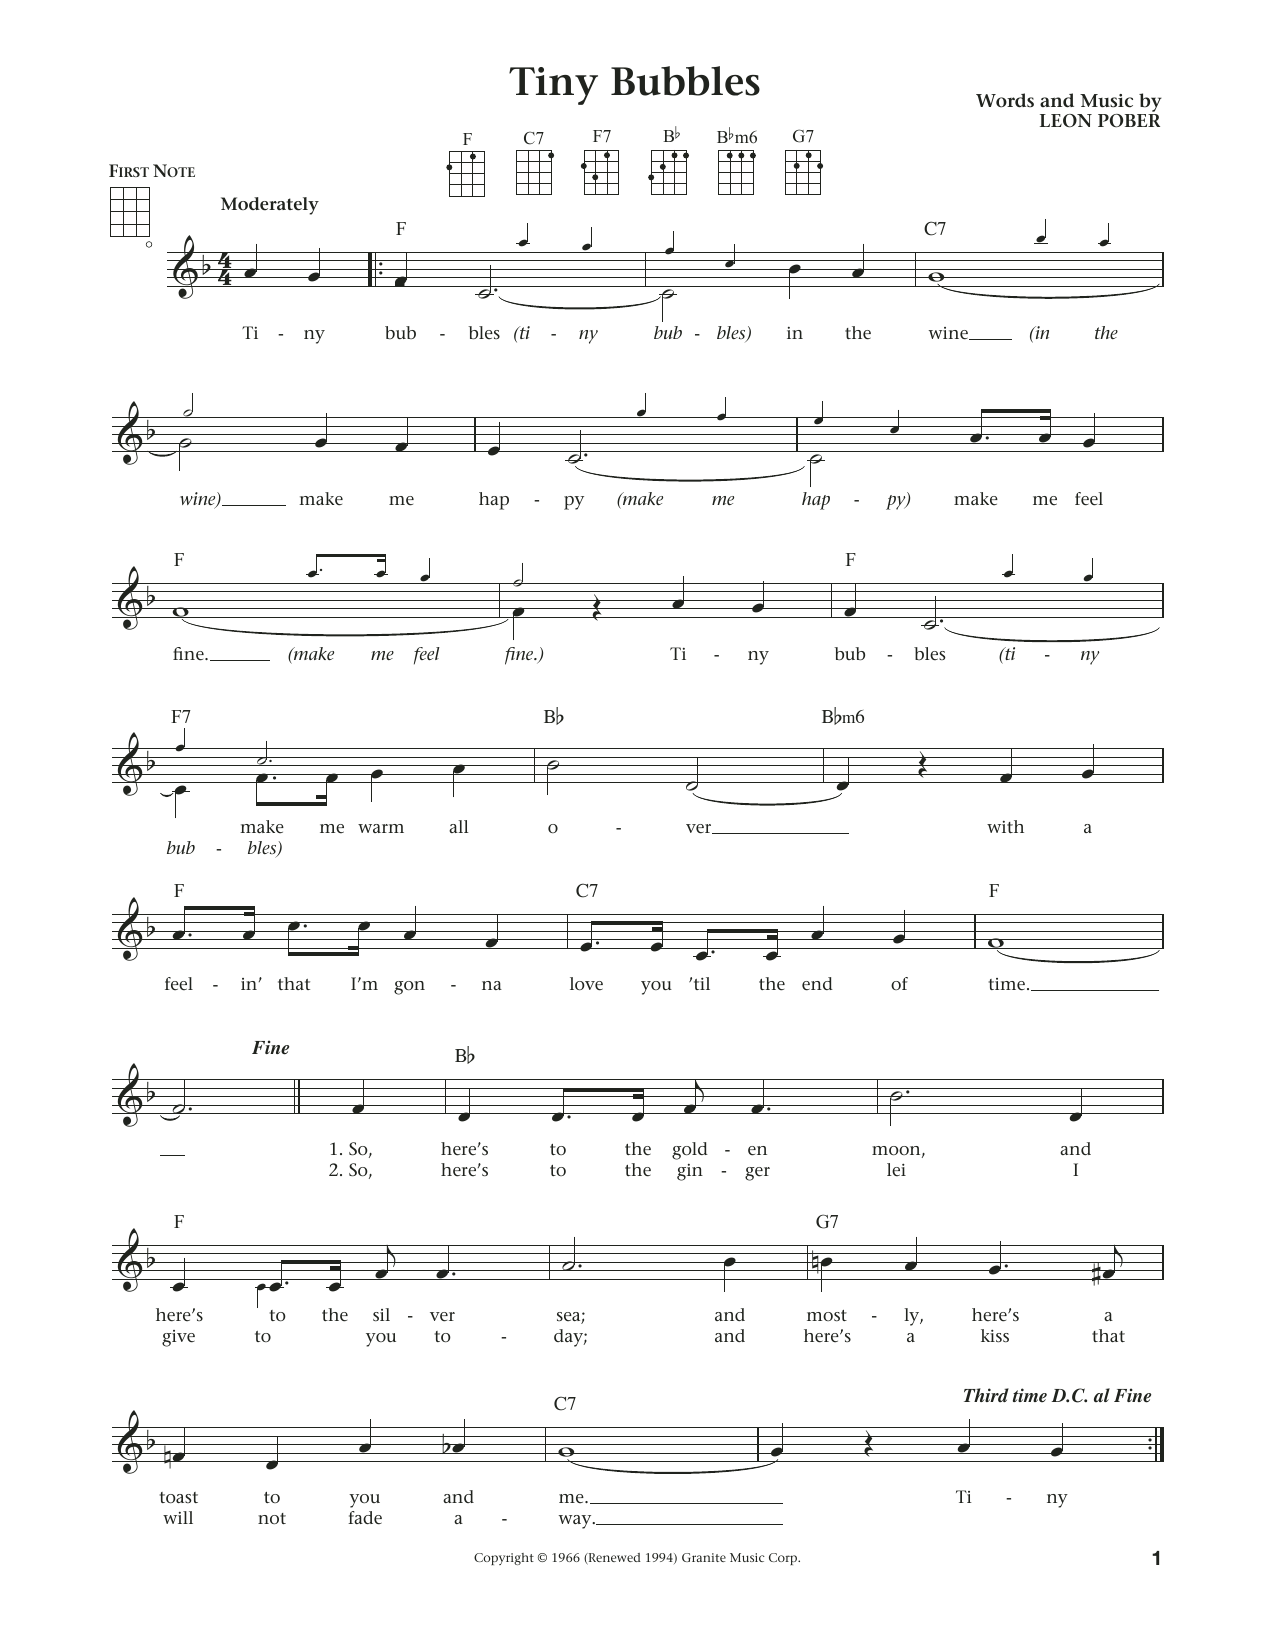 Sheet Music Digital Files To Print Licensed Leon Pober Digital